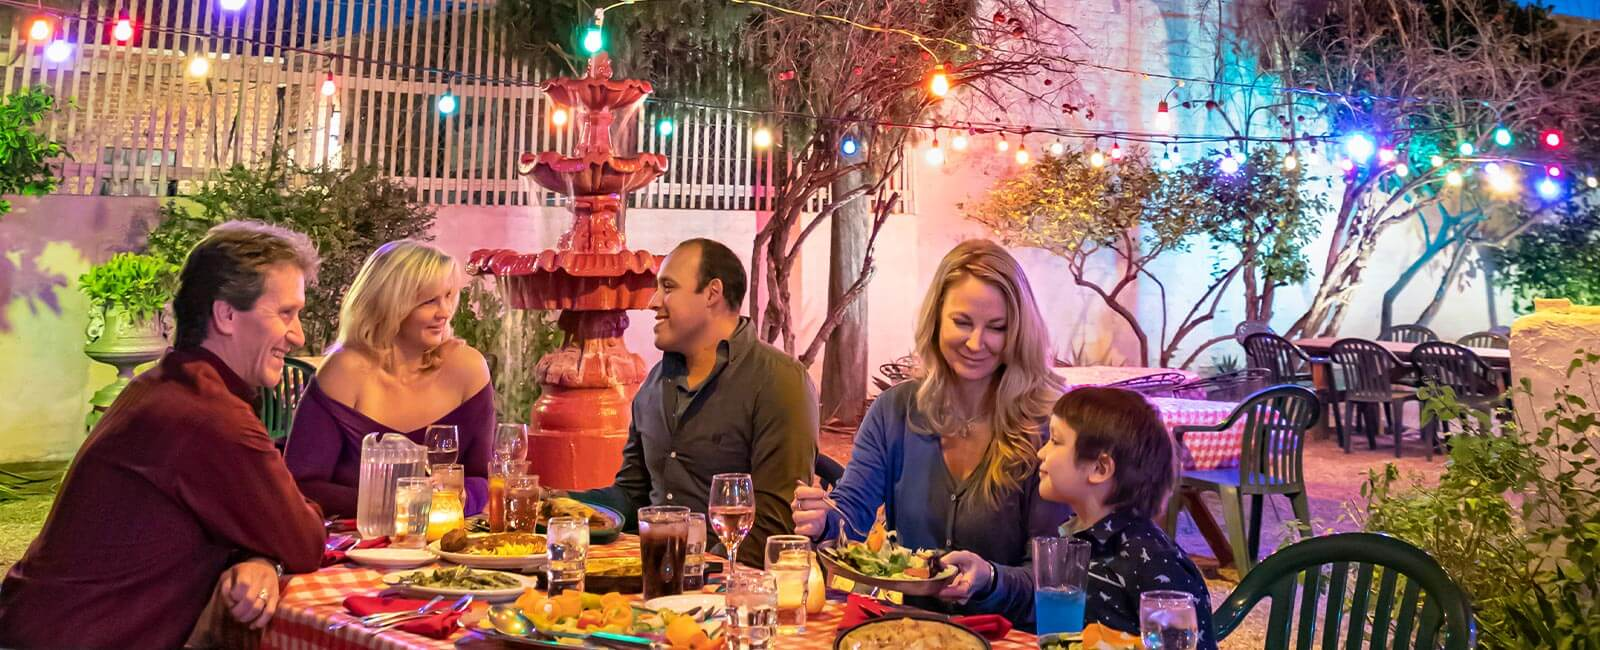 Two adult couples and one young child enjoy an Italian feast on the patio at Caruso's in Tucson, AZ.